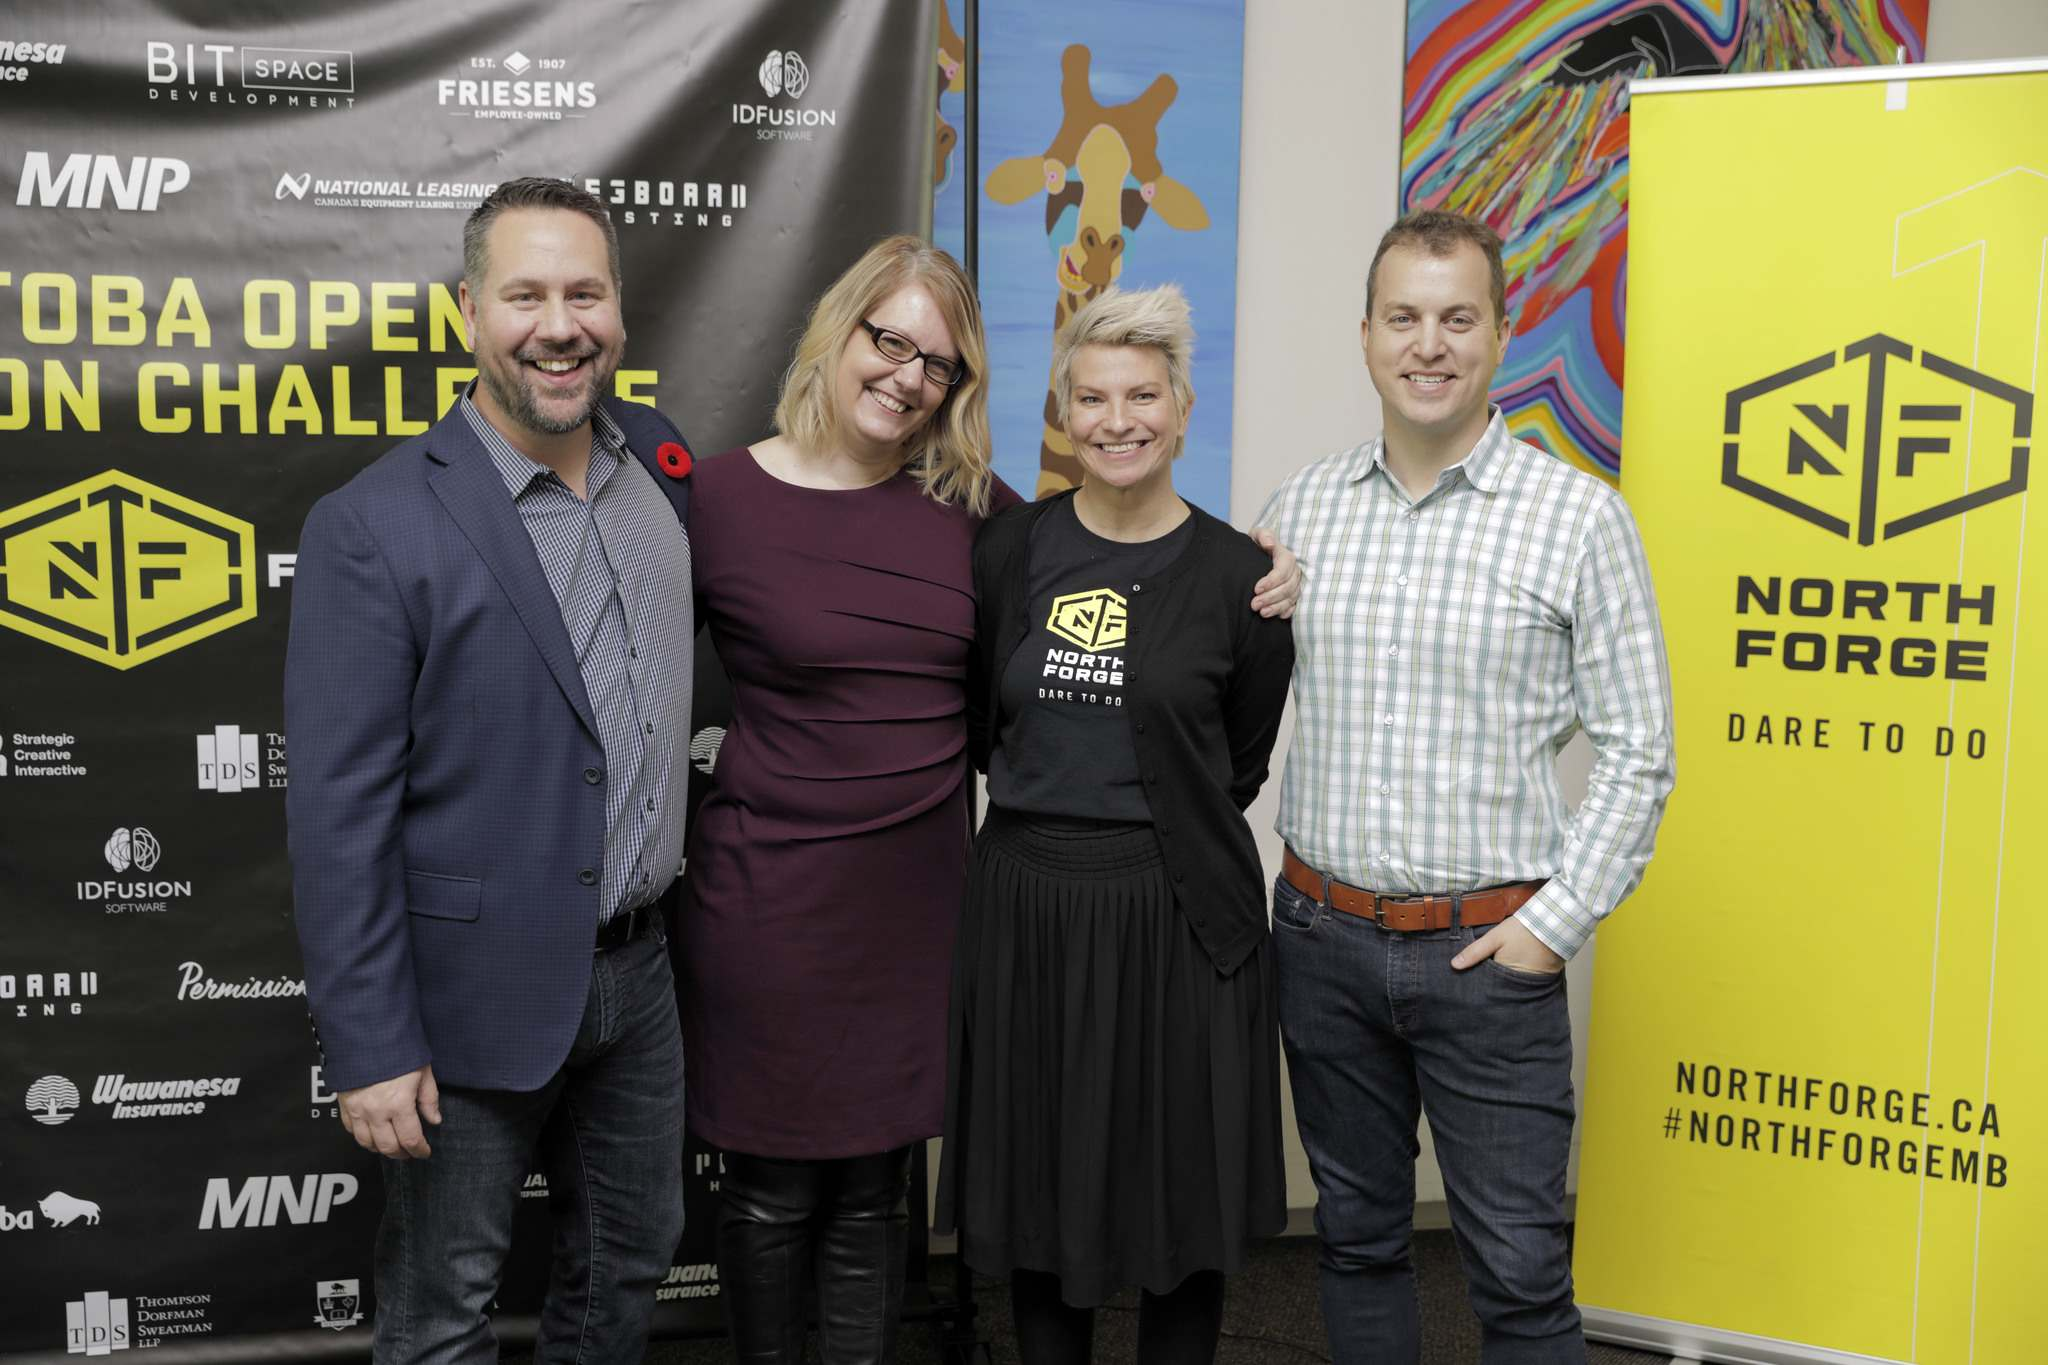 SUPPLIED</p><p>Jeff Ryzner, left, out-going president of North Forge, Teresa Dukes, Suzanne Braun managing director of Relish Brands and project lead on North Forge&rsquo;s Manitoba Open Innovation Challenge project, and Chris Johnson, North Forge director and CEO of Permission Click.</p>